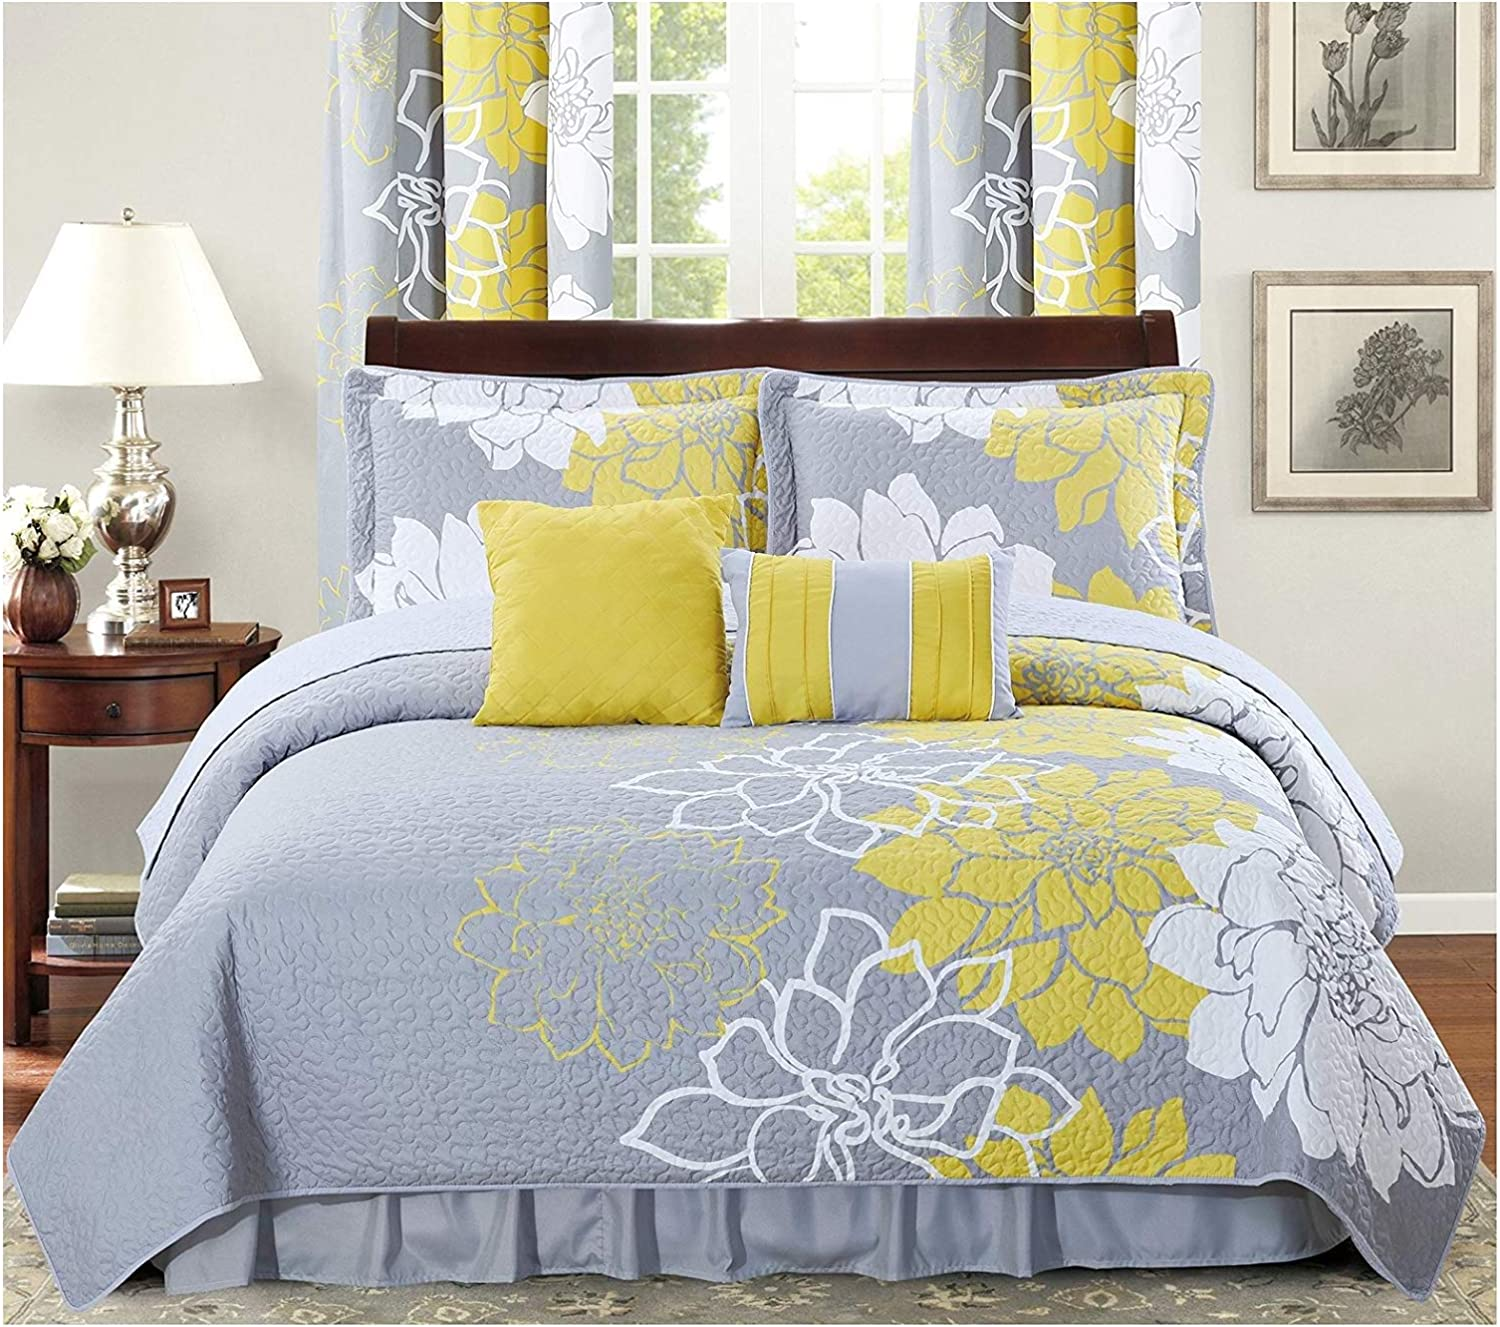 All American Collection New 4pc Flower Printed Reversible Bedspread Set with Dust Ruffle (Twin Size, Yellow/Grey)